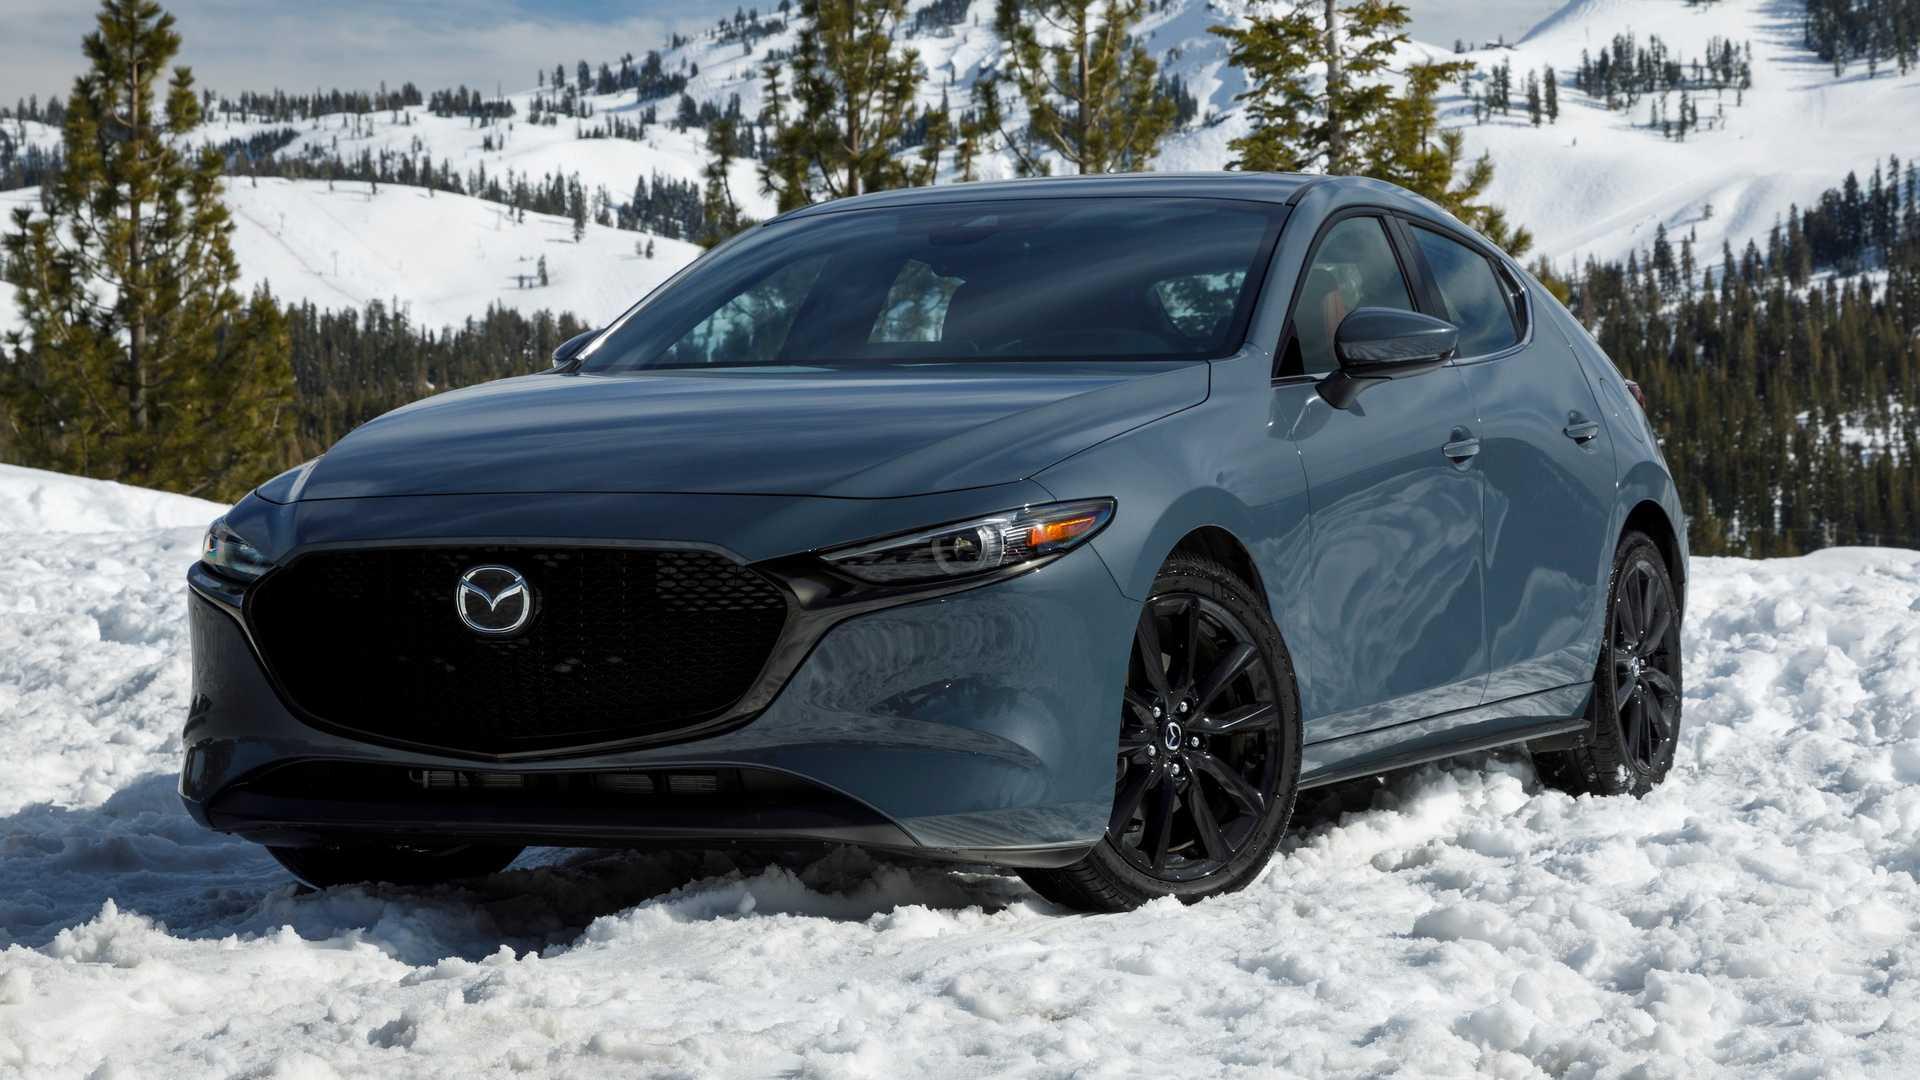 52 A 2019 Mazdaspeed 3 Research New